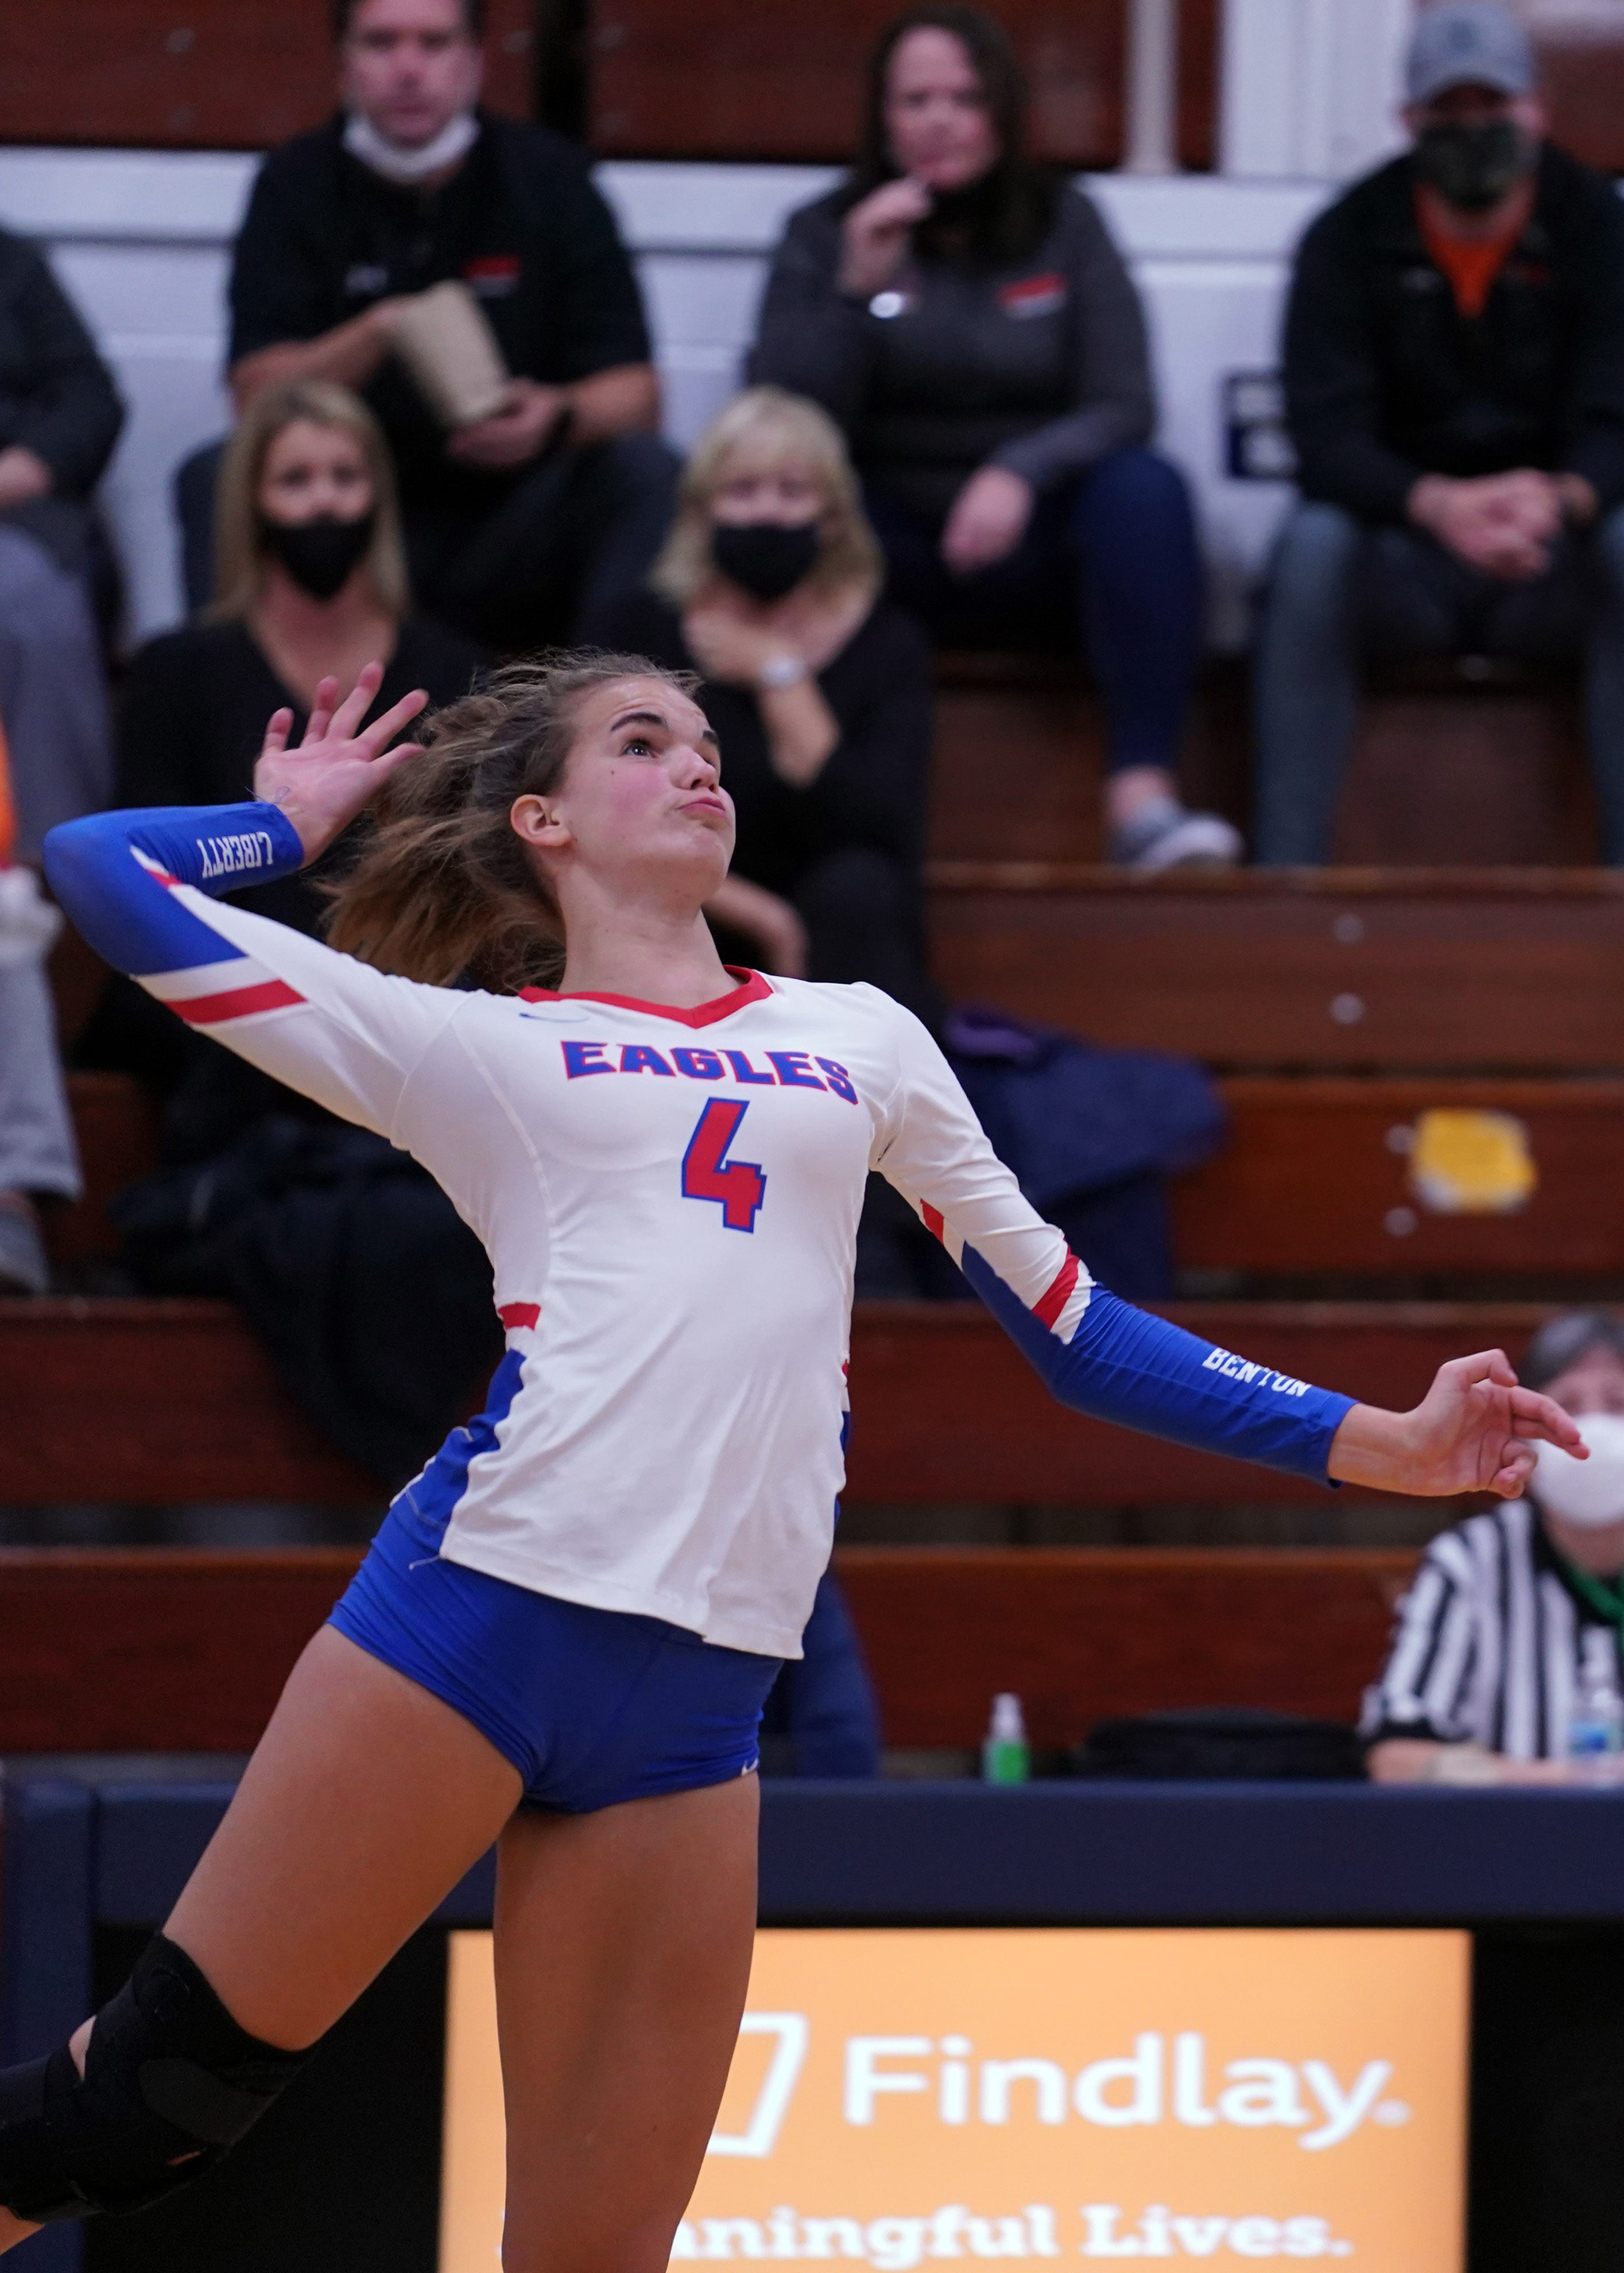 Karis Willow of Liberty Benton is one of the best volleyball players in the state of Ohio.